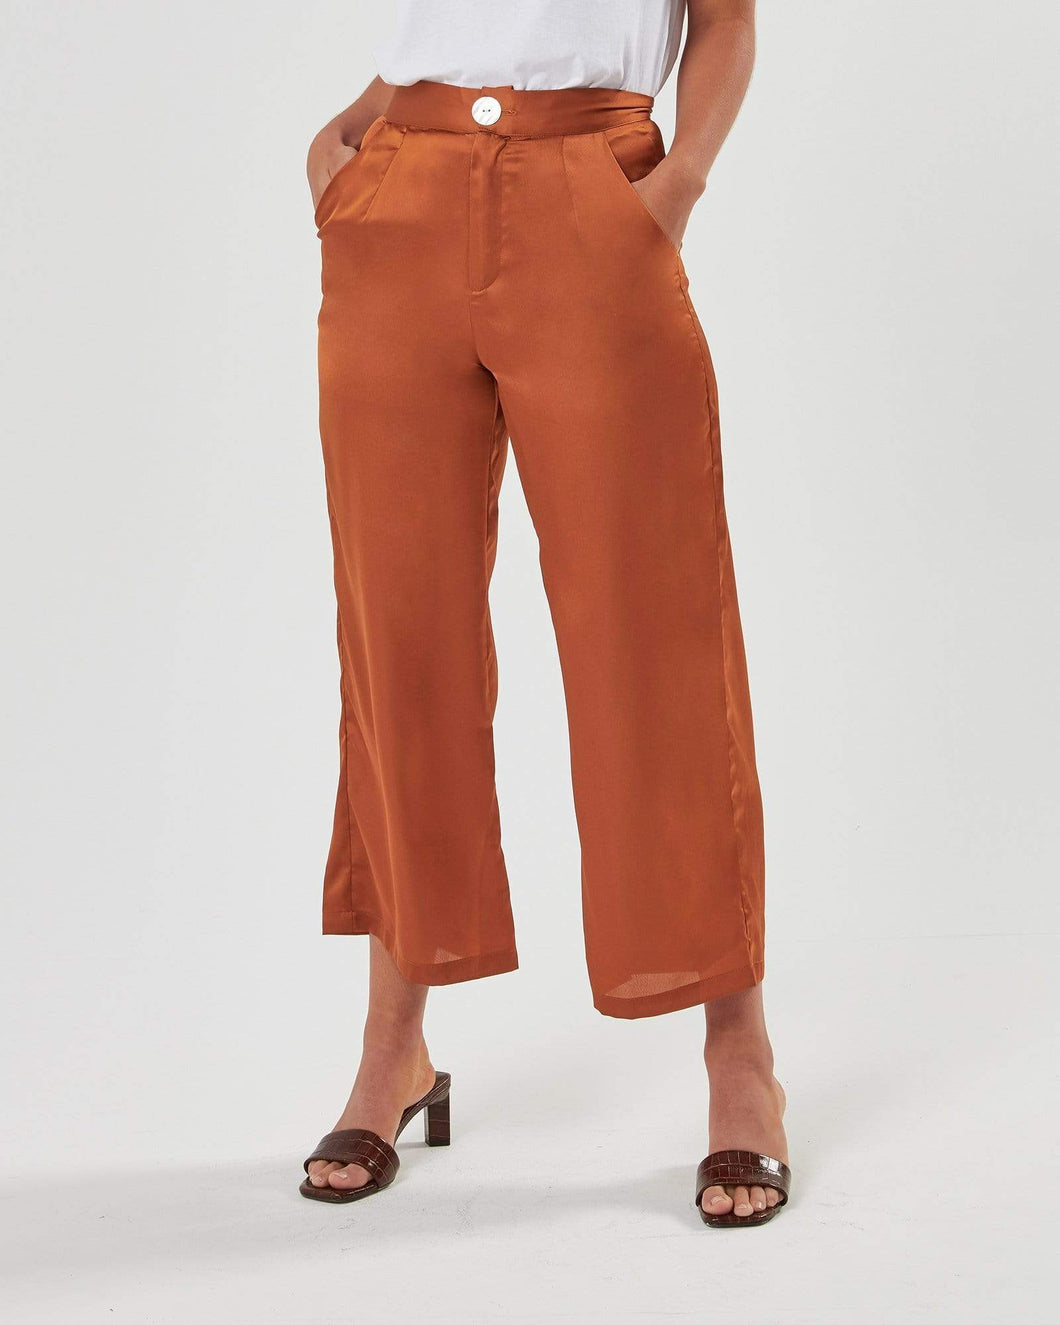 CHARLIE HOLIDAY Milla Pant